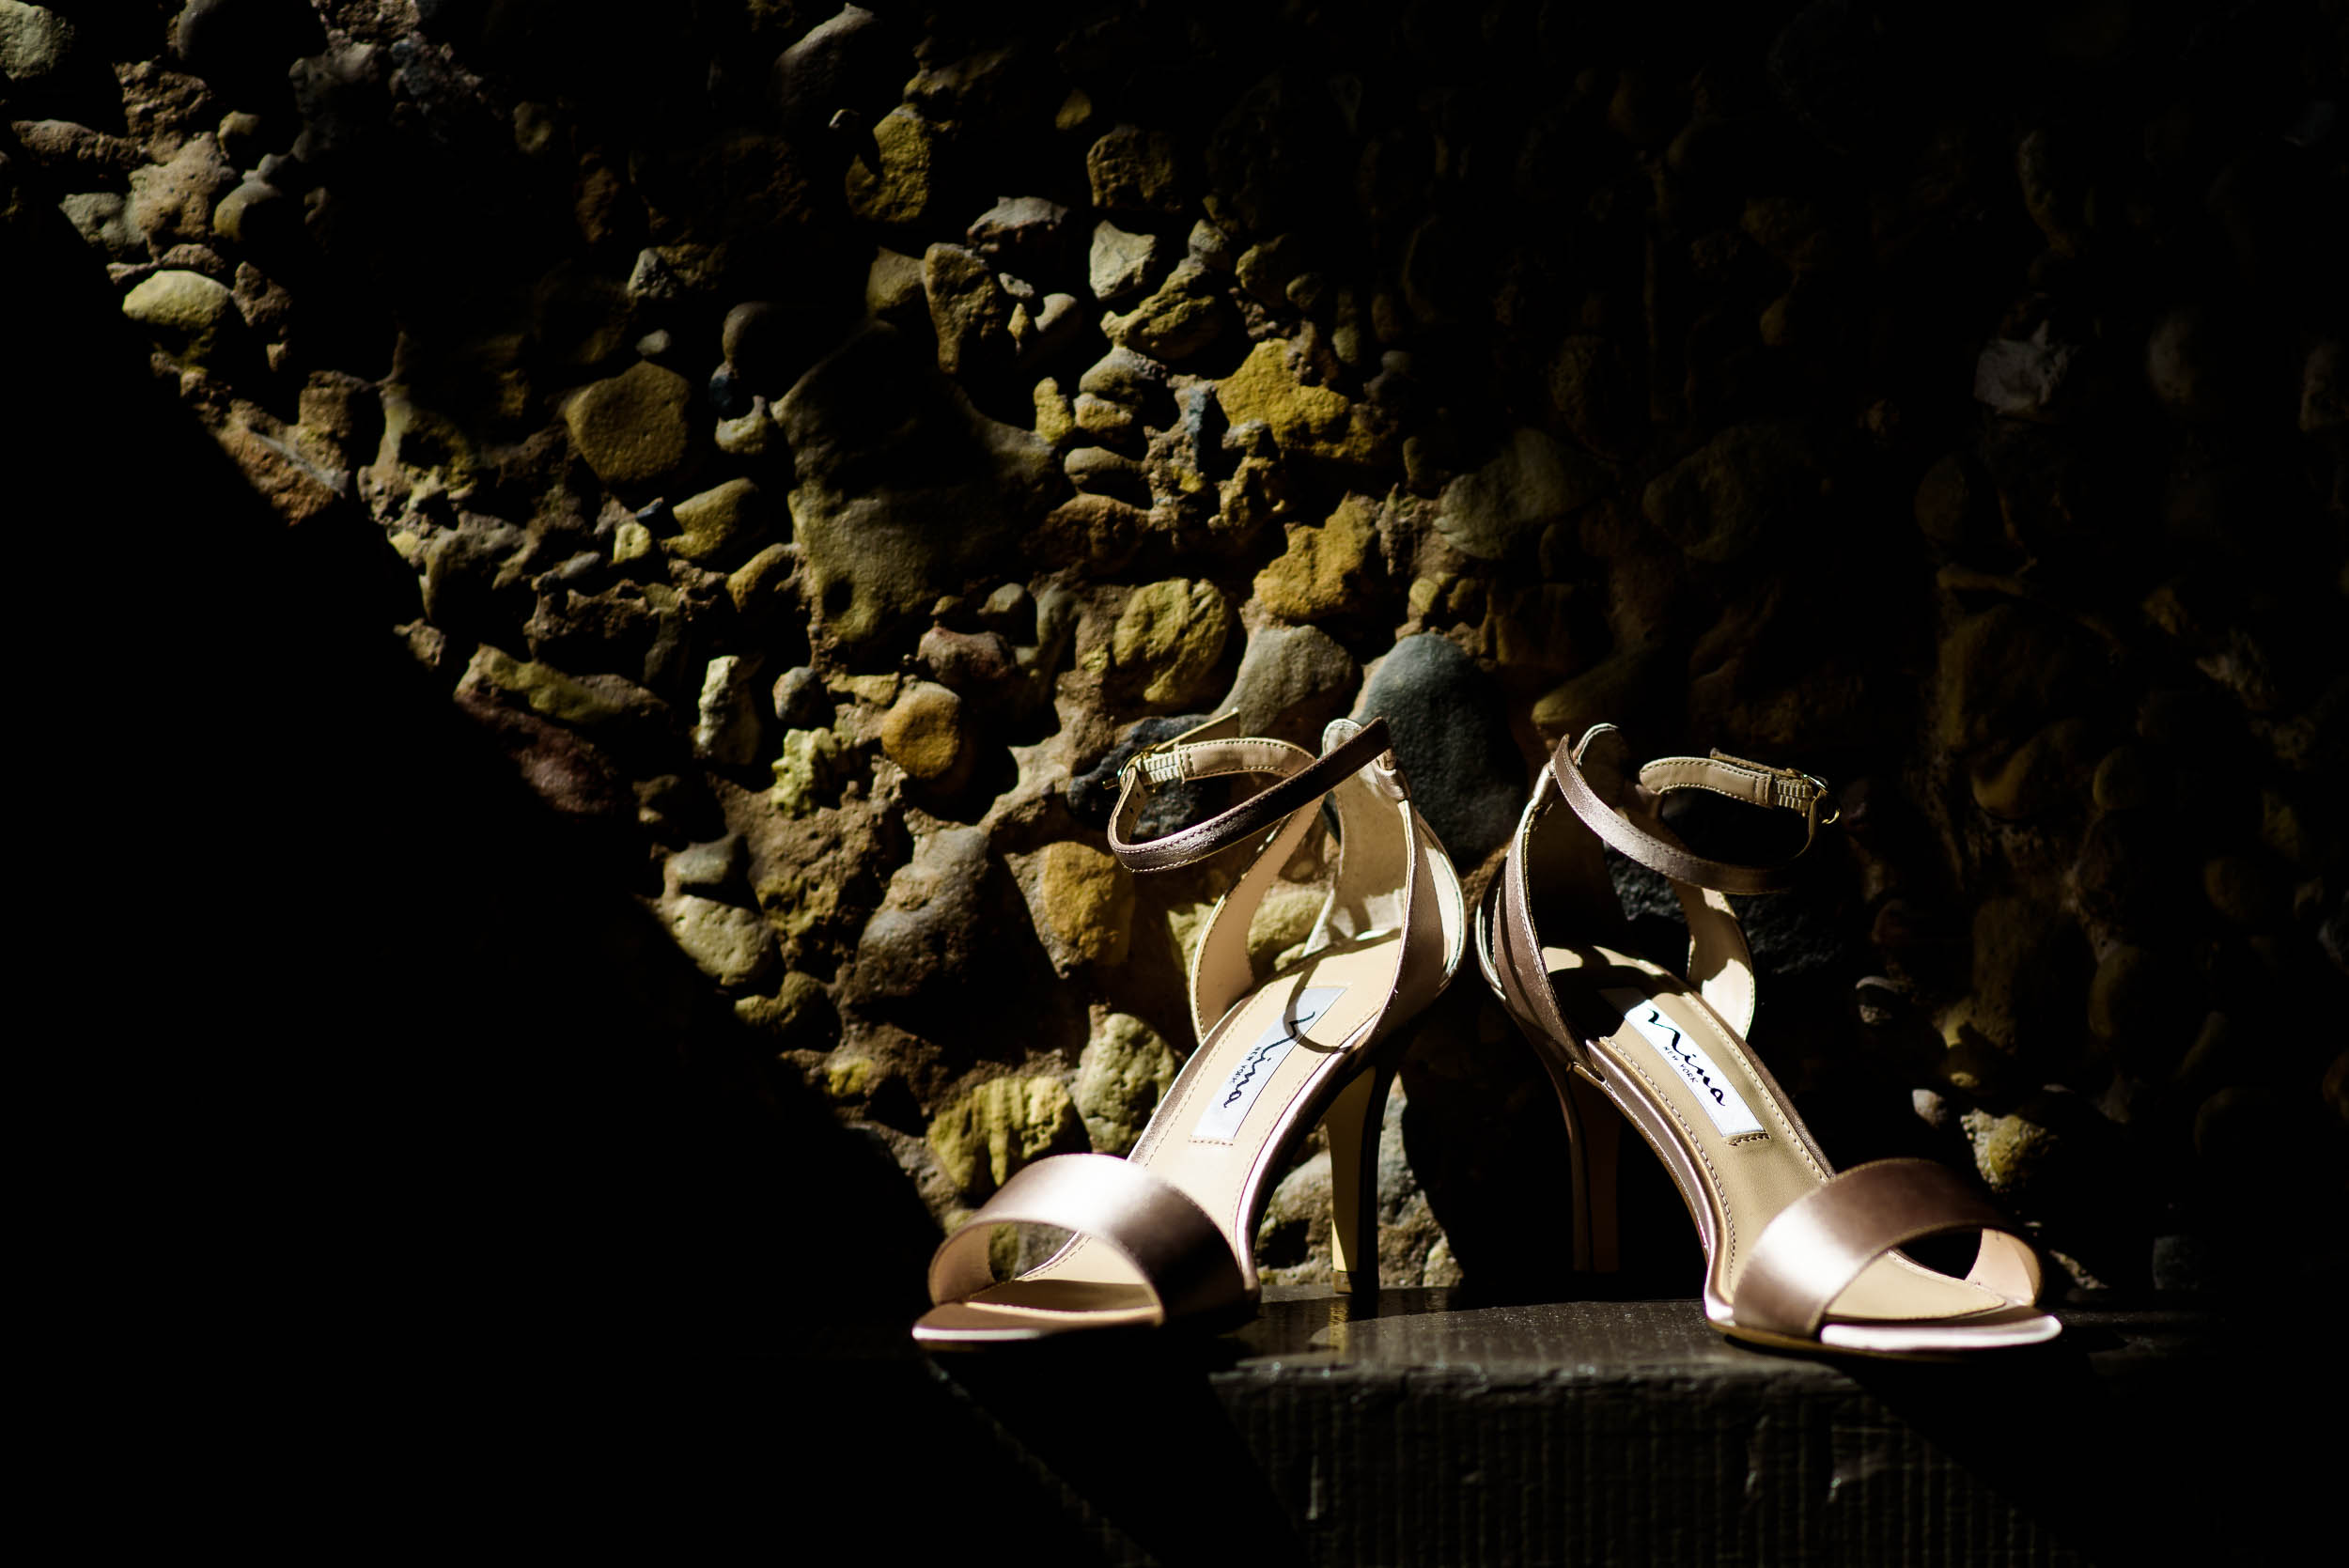 Bridal shoes for Grand Geneve Resort Fall Chicago Wedding captured by J. Brown Photography. Visit jbrownphotography.com for more wedding inspiration!